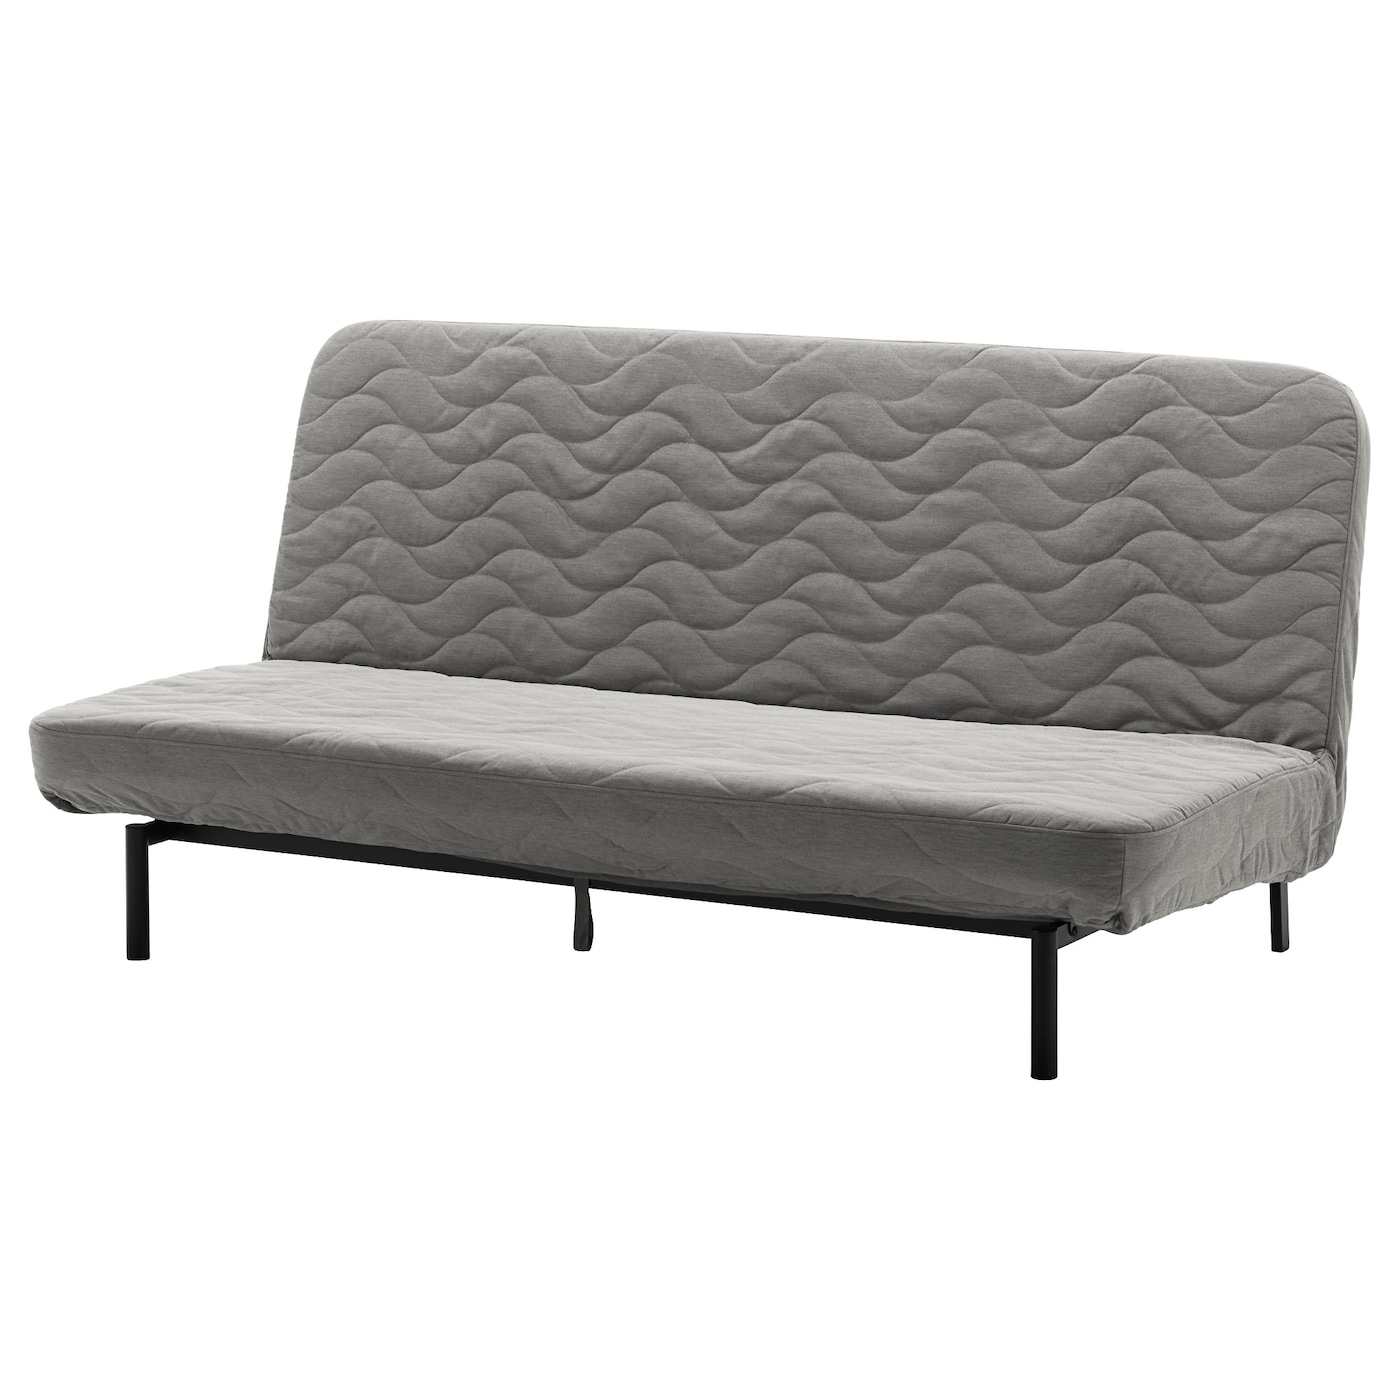 Nyhamn Sleeper Sofa With Pocket Spring